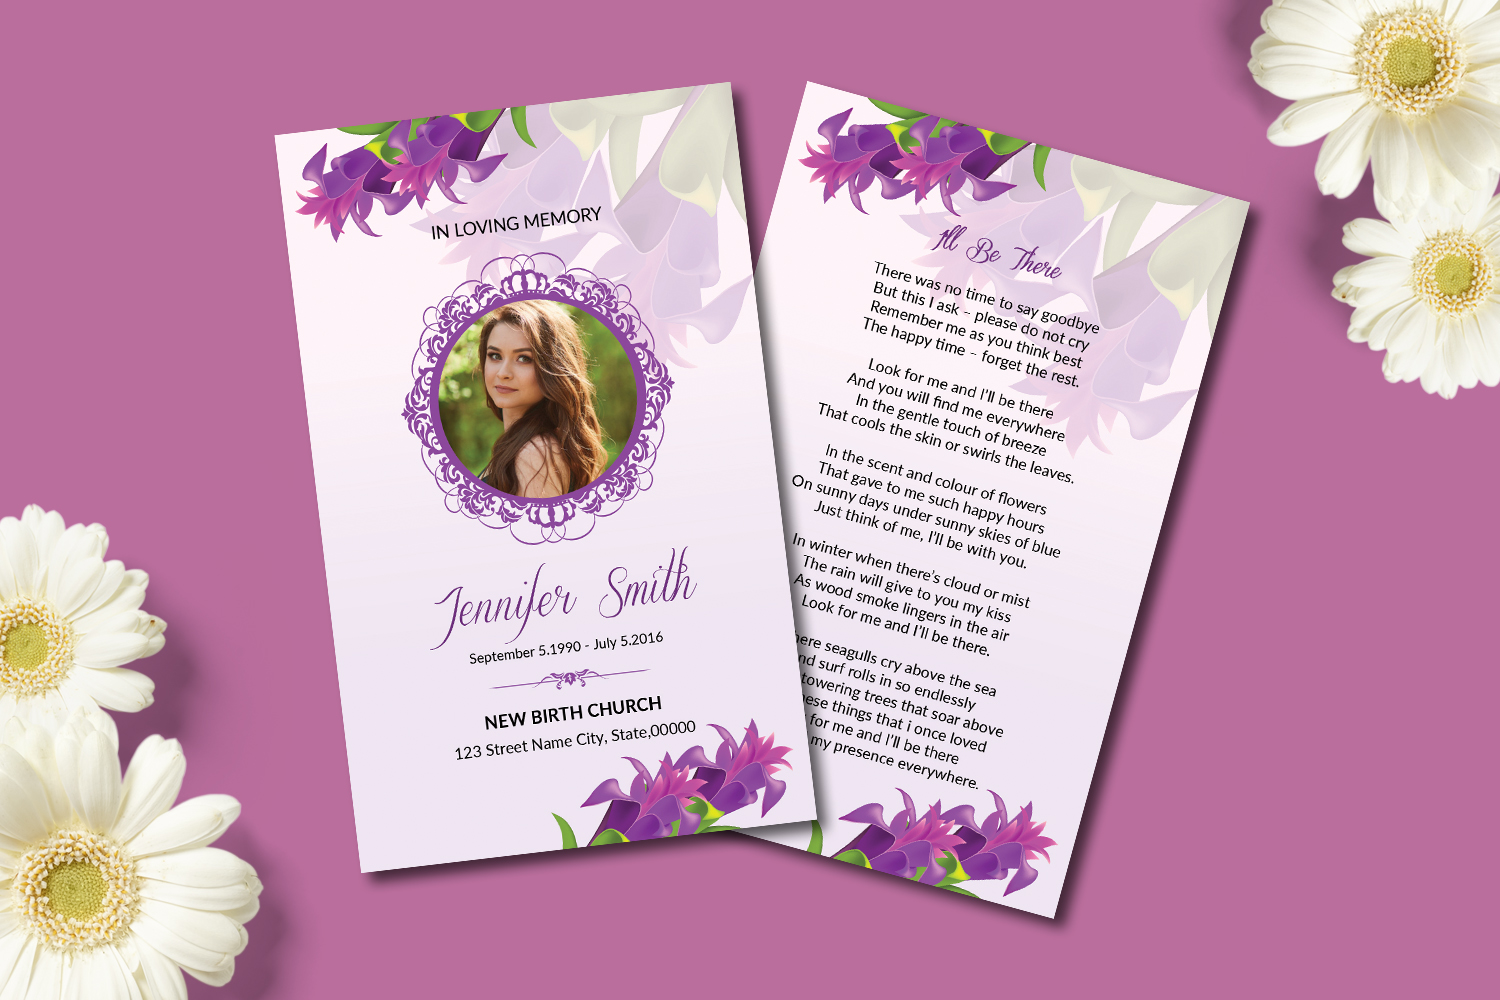 Funeral Prayer Card Template example image 3